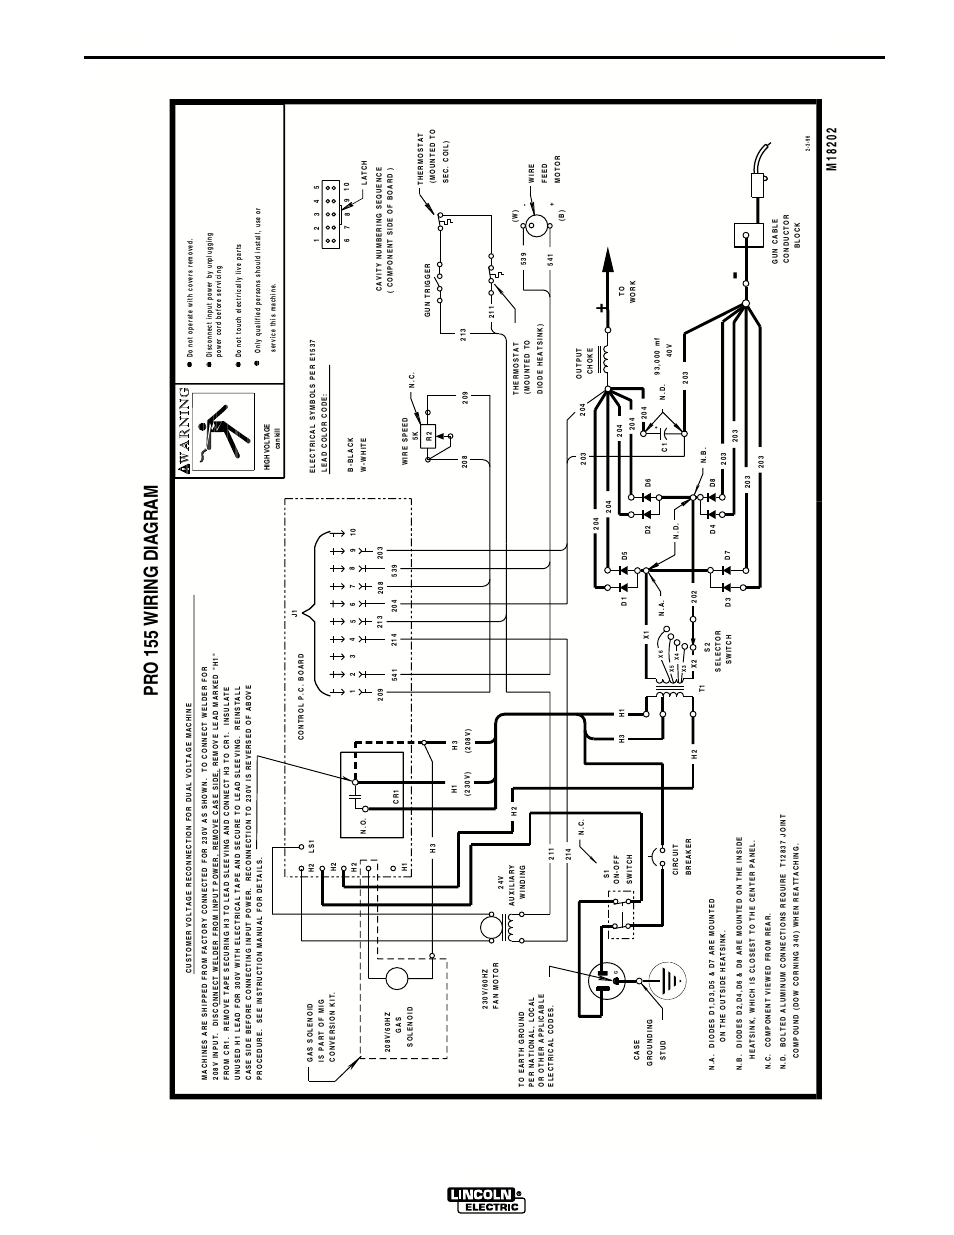 medium resolution of lincoln 140c mig welder wiring diagram lincoln auto 2011 road king wiring diagram 2011 road king wiring diagram